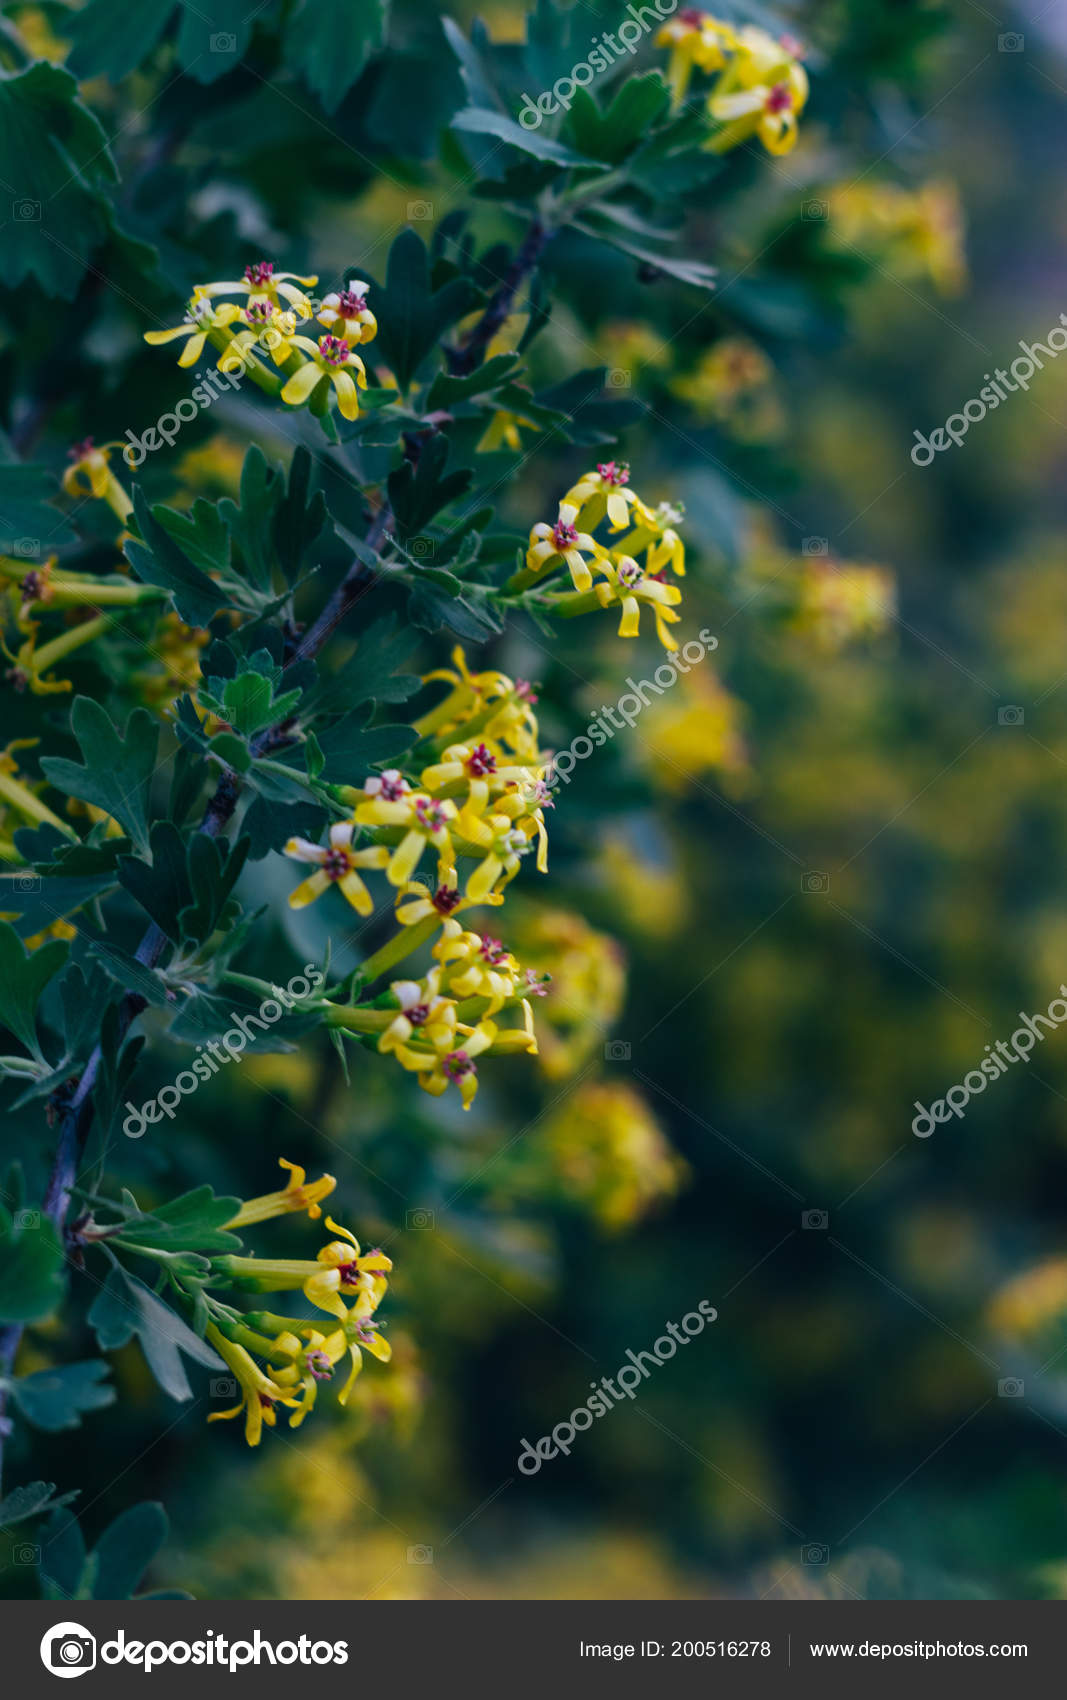 Yellow Flowers Gooseberry Gooseberry Bush Spring Branches Green